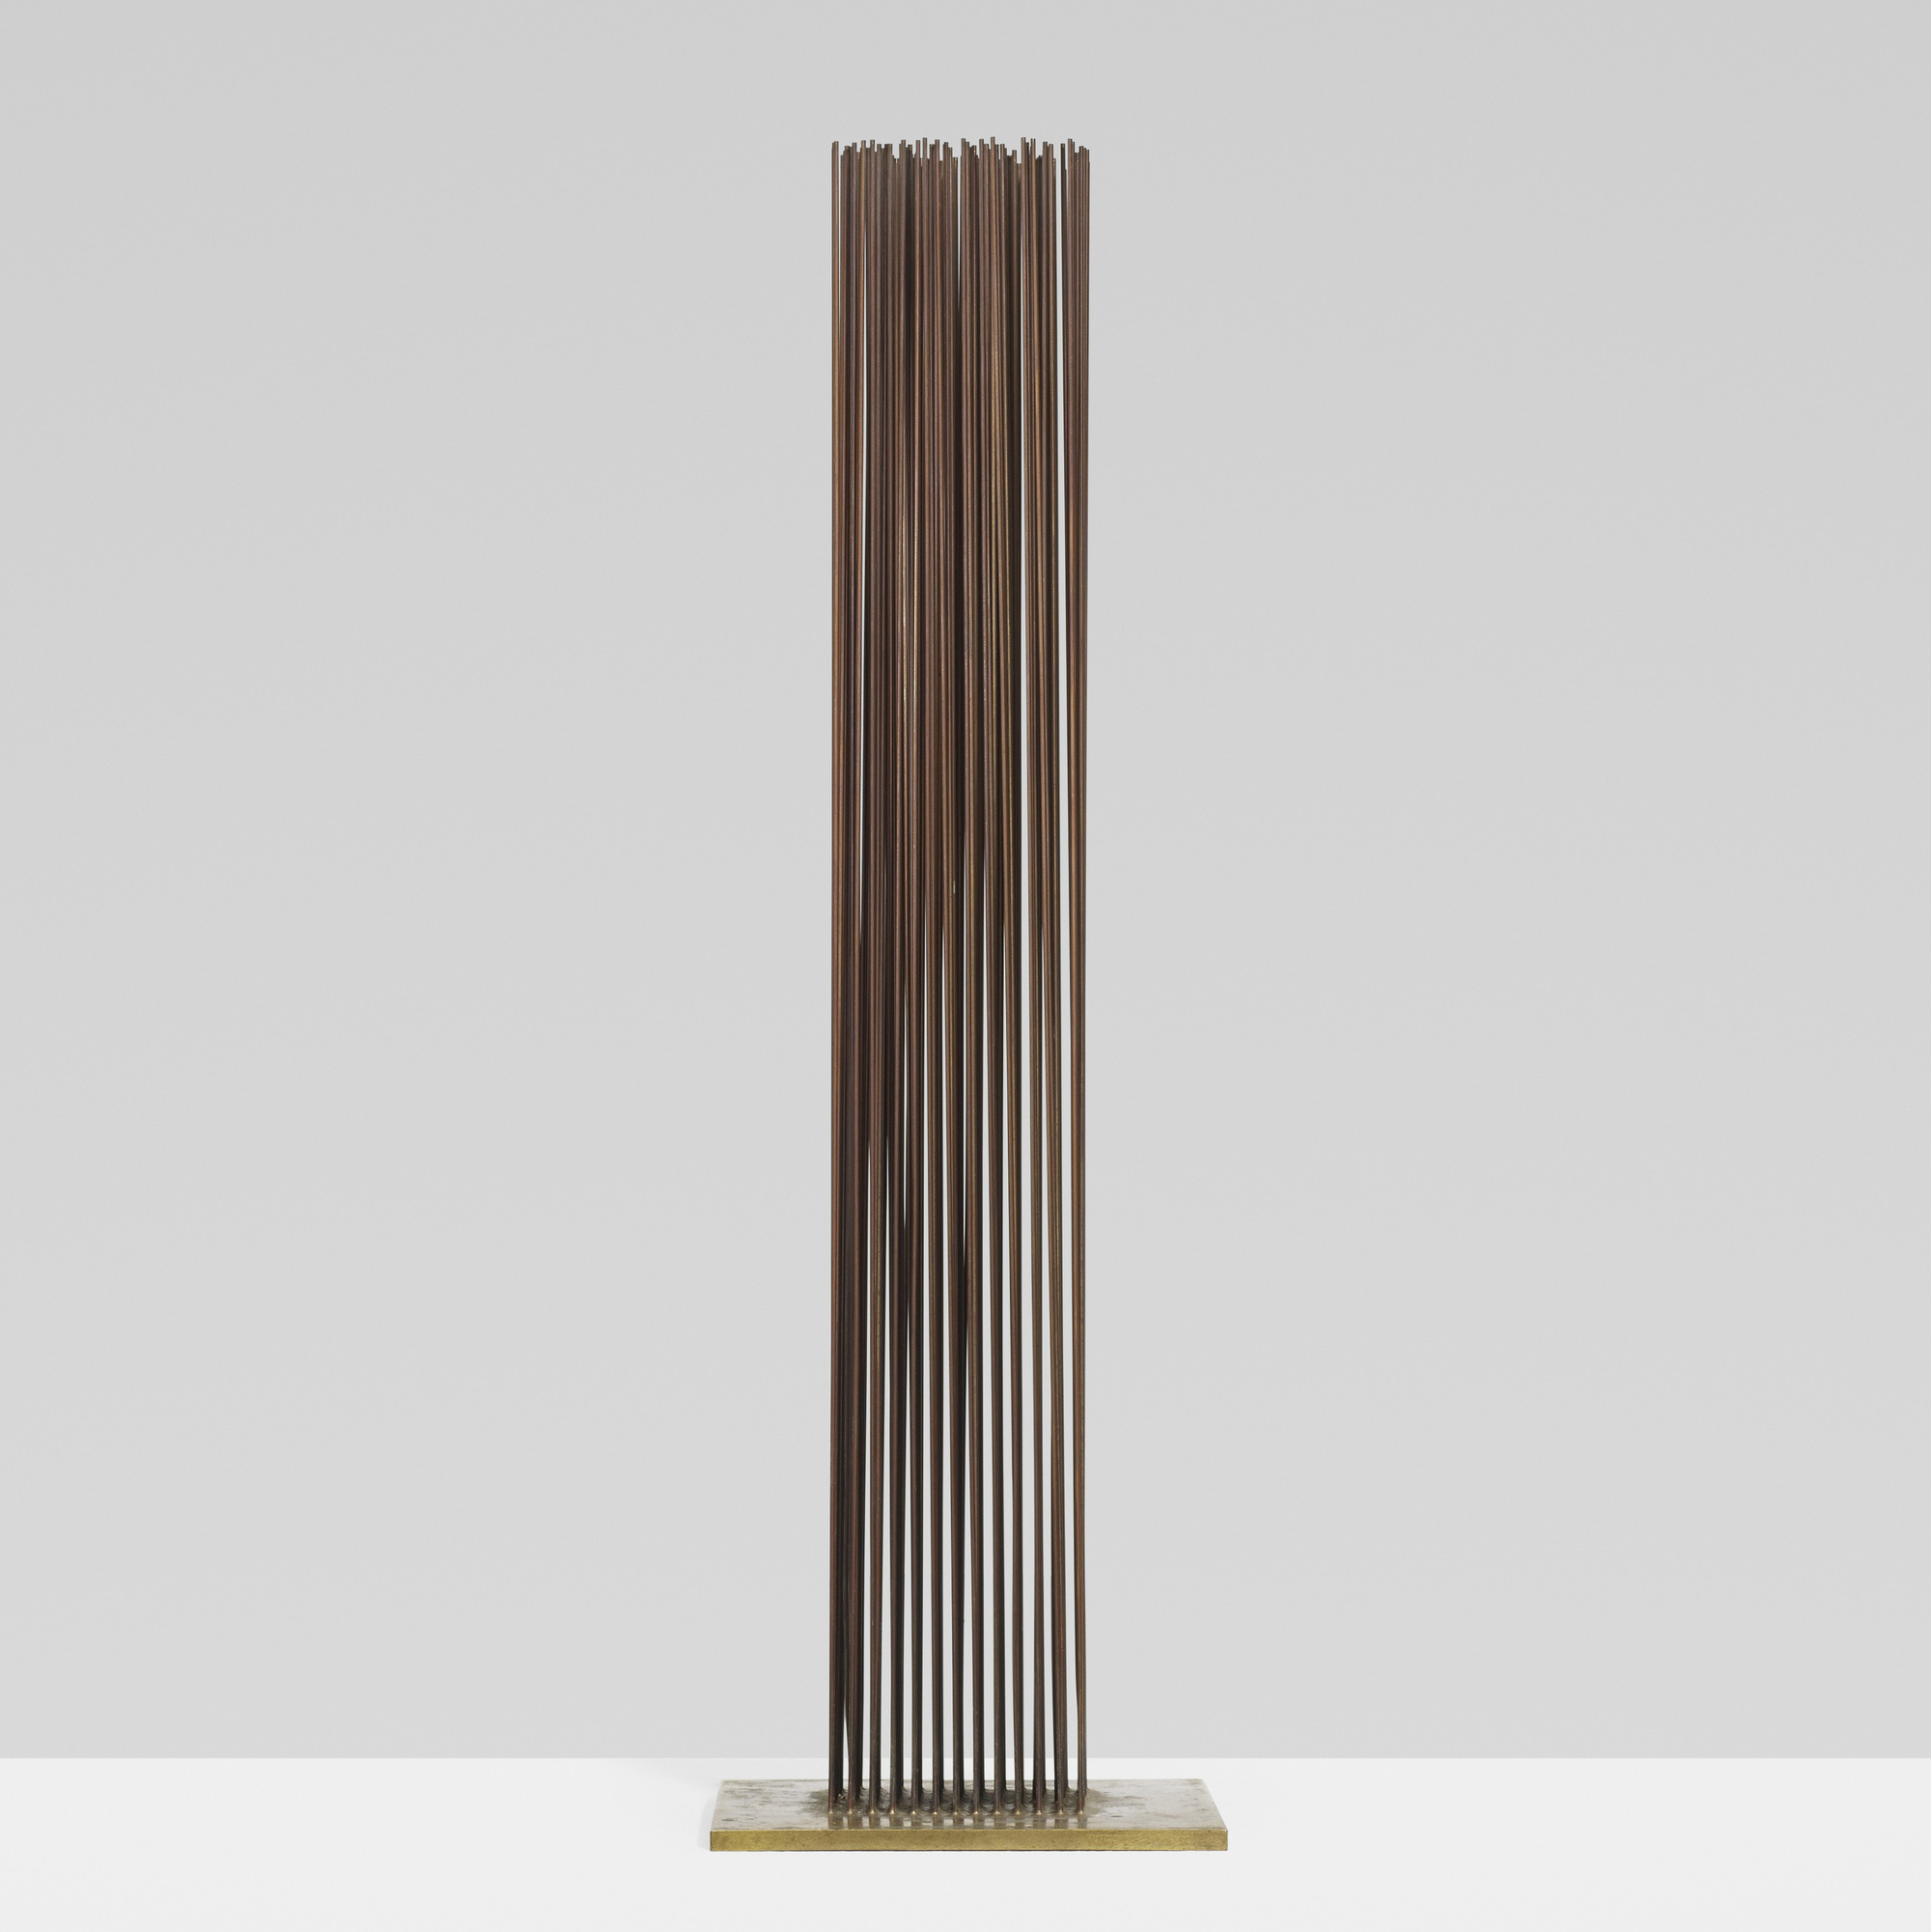 190: Harry Bertoia / Untitled (Sonambient) (2 of 4)